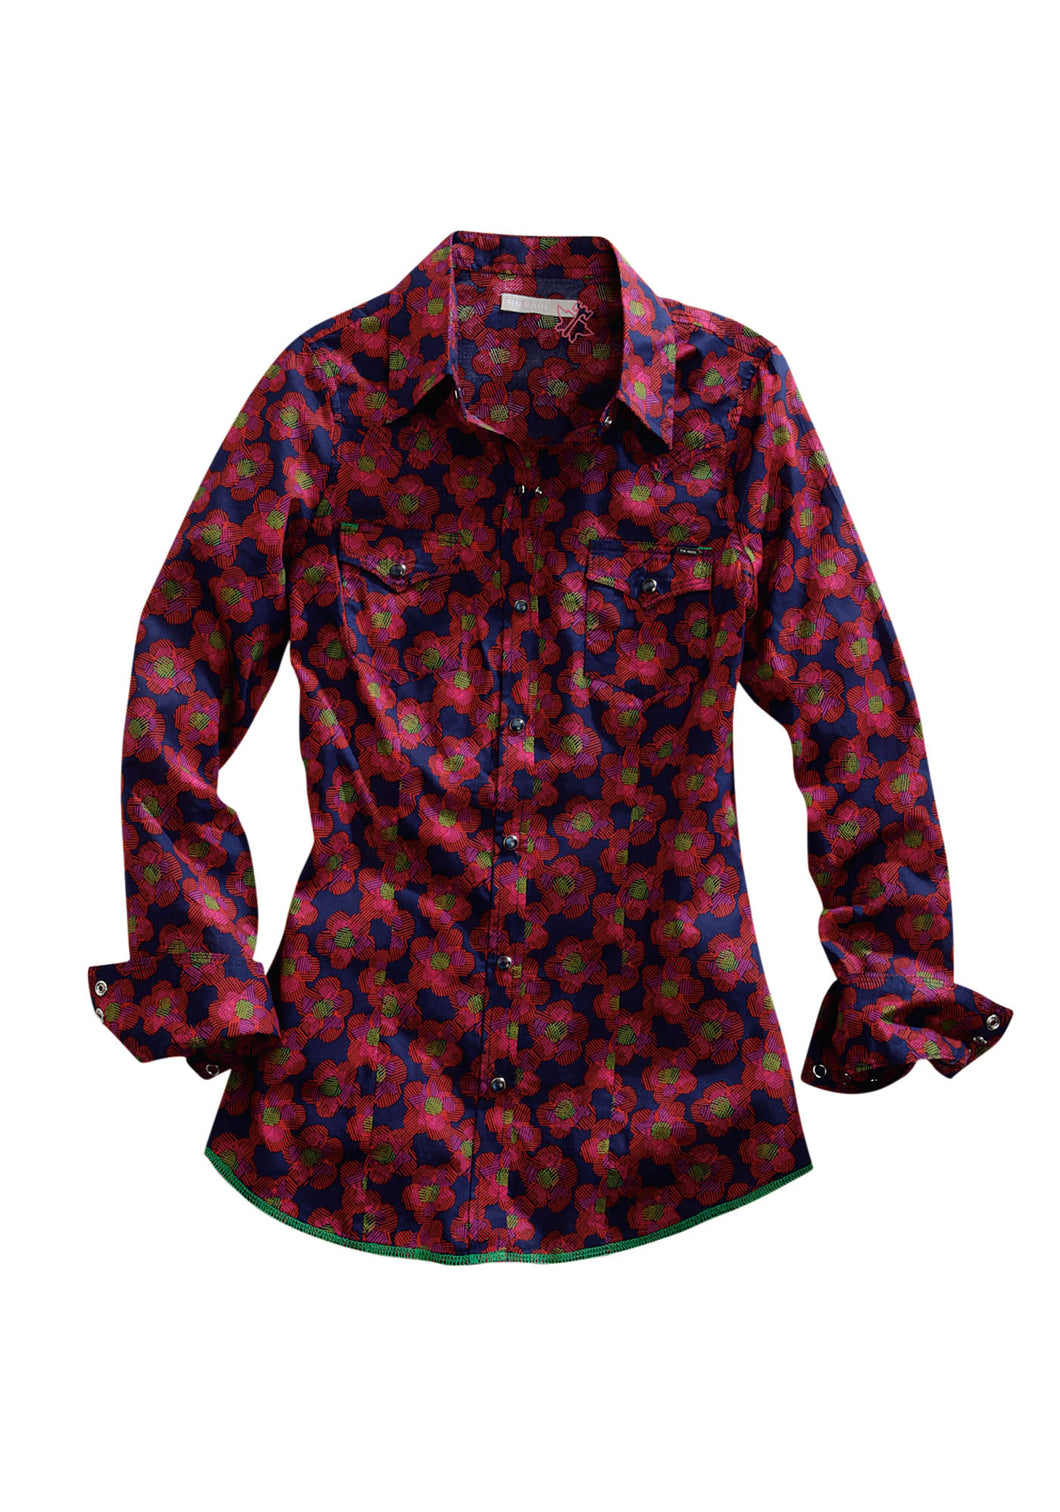 Tin Haul Collection Tinhaul Ladies Long Sleeve Shirt 0250 Bouncy Floral Print